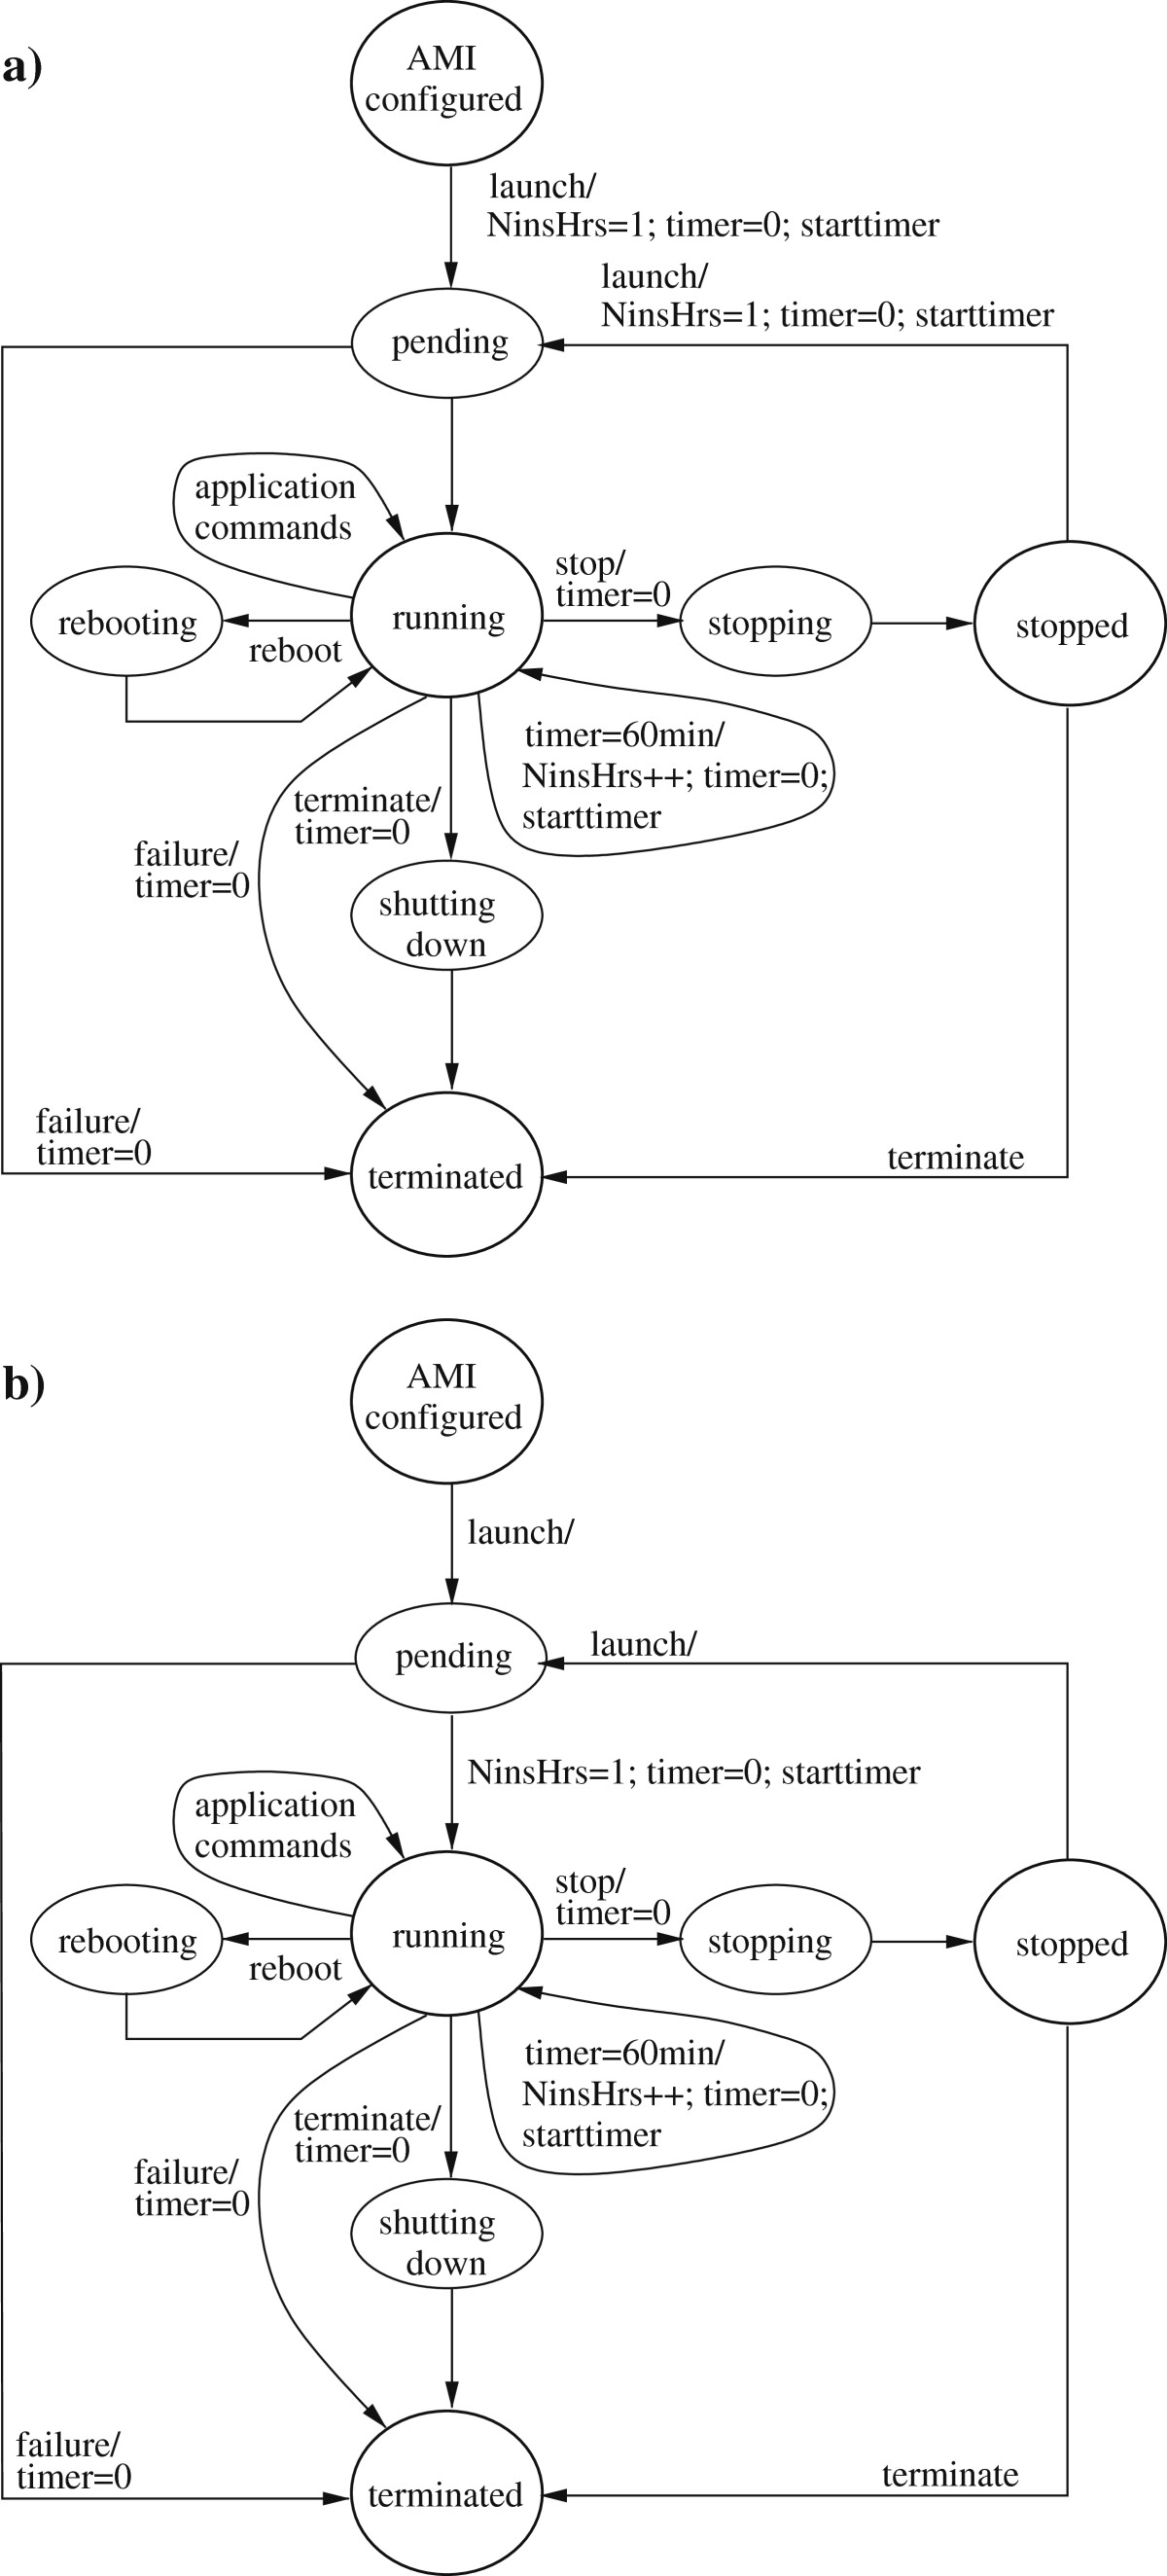 https://static-content.springer.com/image/art%3A10.1186%2F1869-0238-4-8/MediaObjects/13174_2013_Article_7_Fig10_HTML.jpg